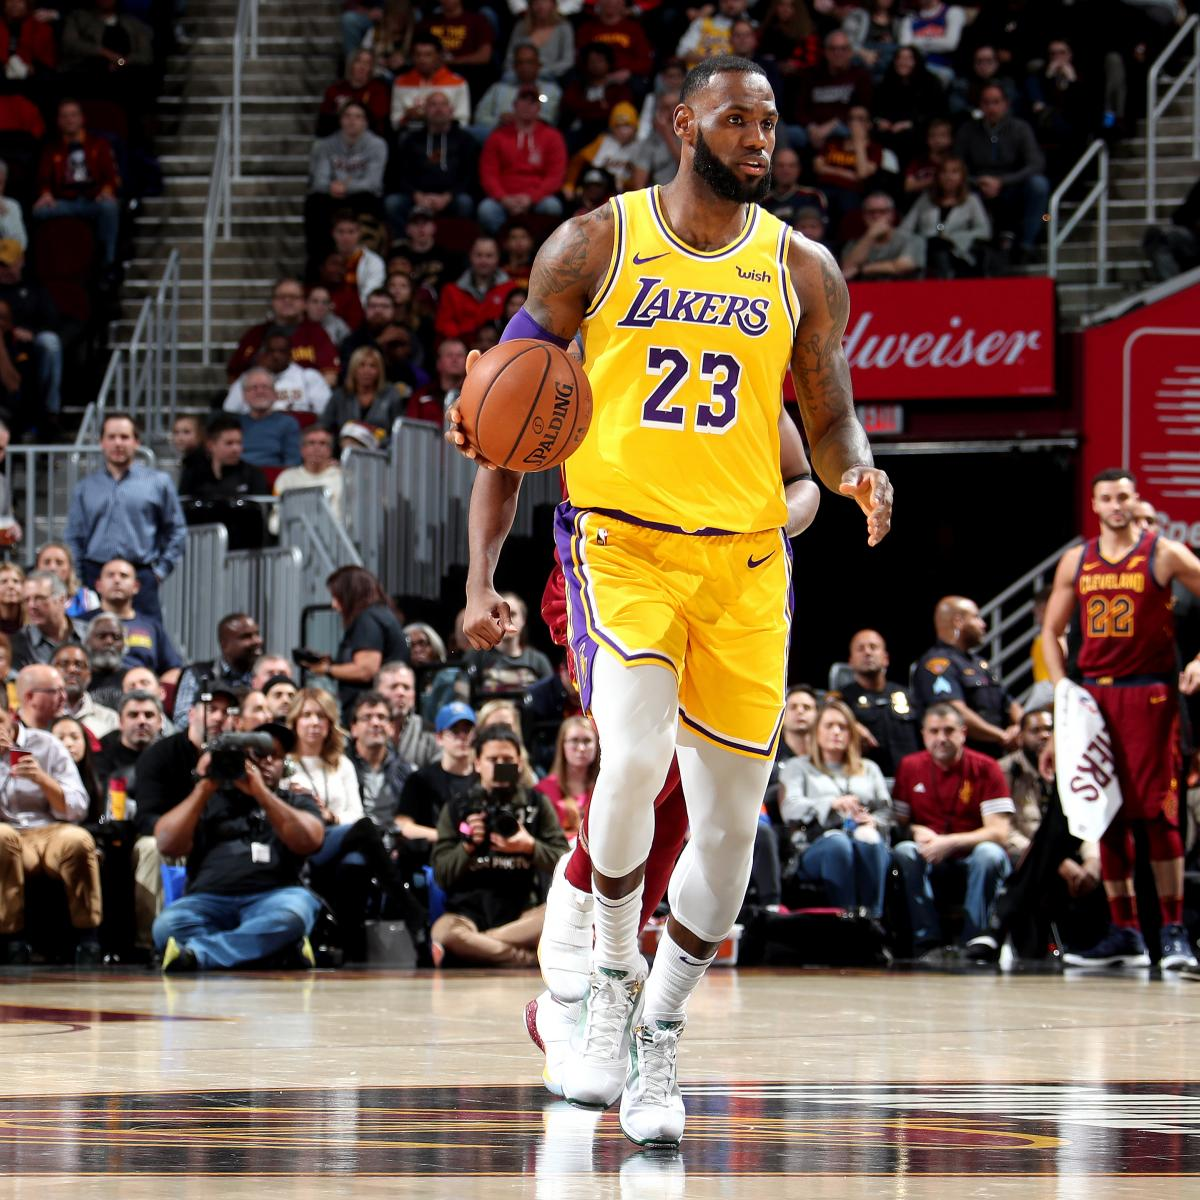 Lakers Vs Cavs >> Lebron James Drops 32 Leads Lakers To Win Vs Cavs In